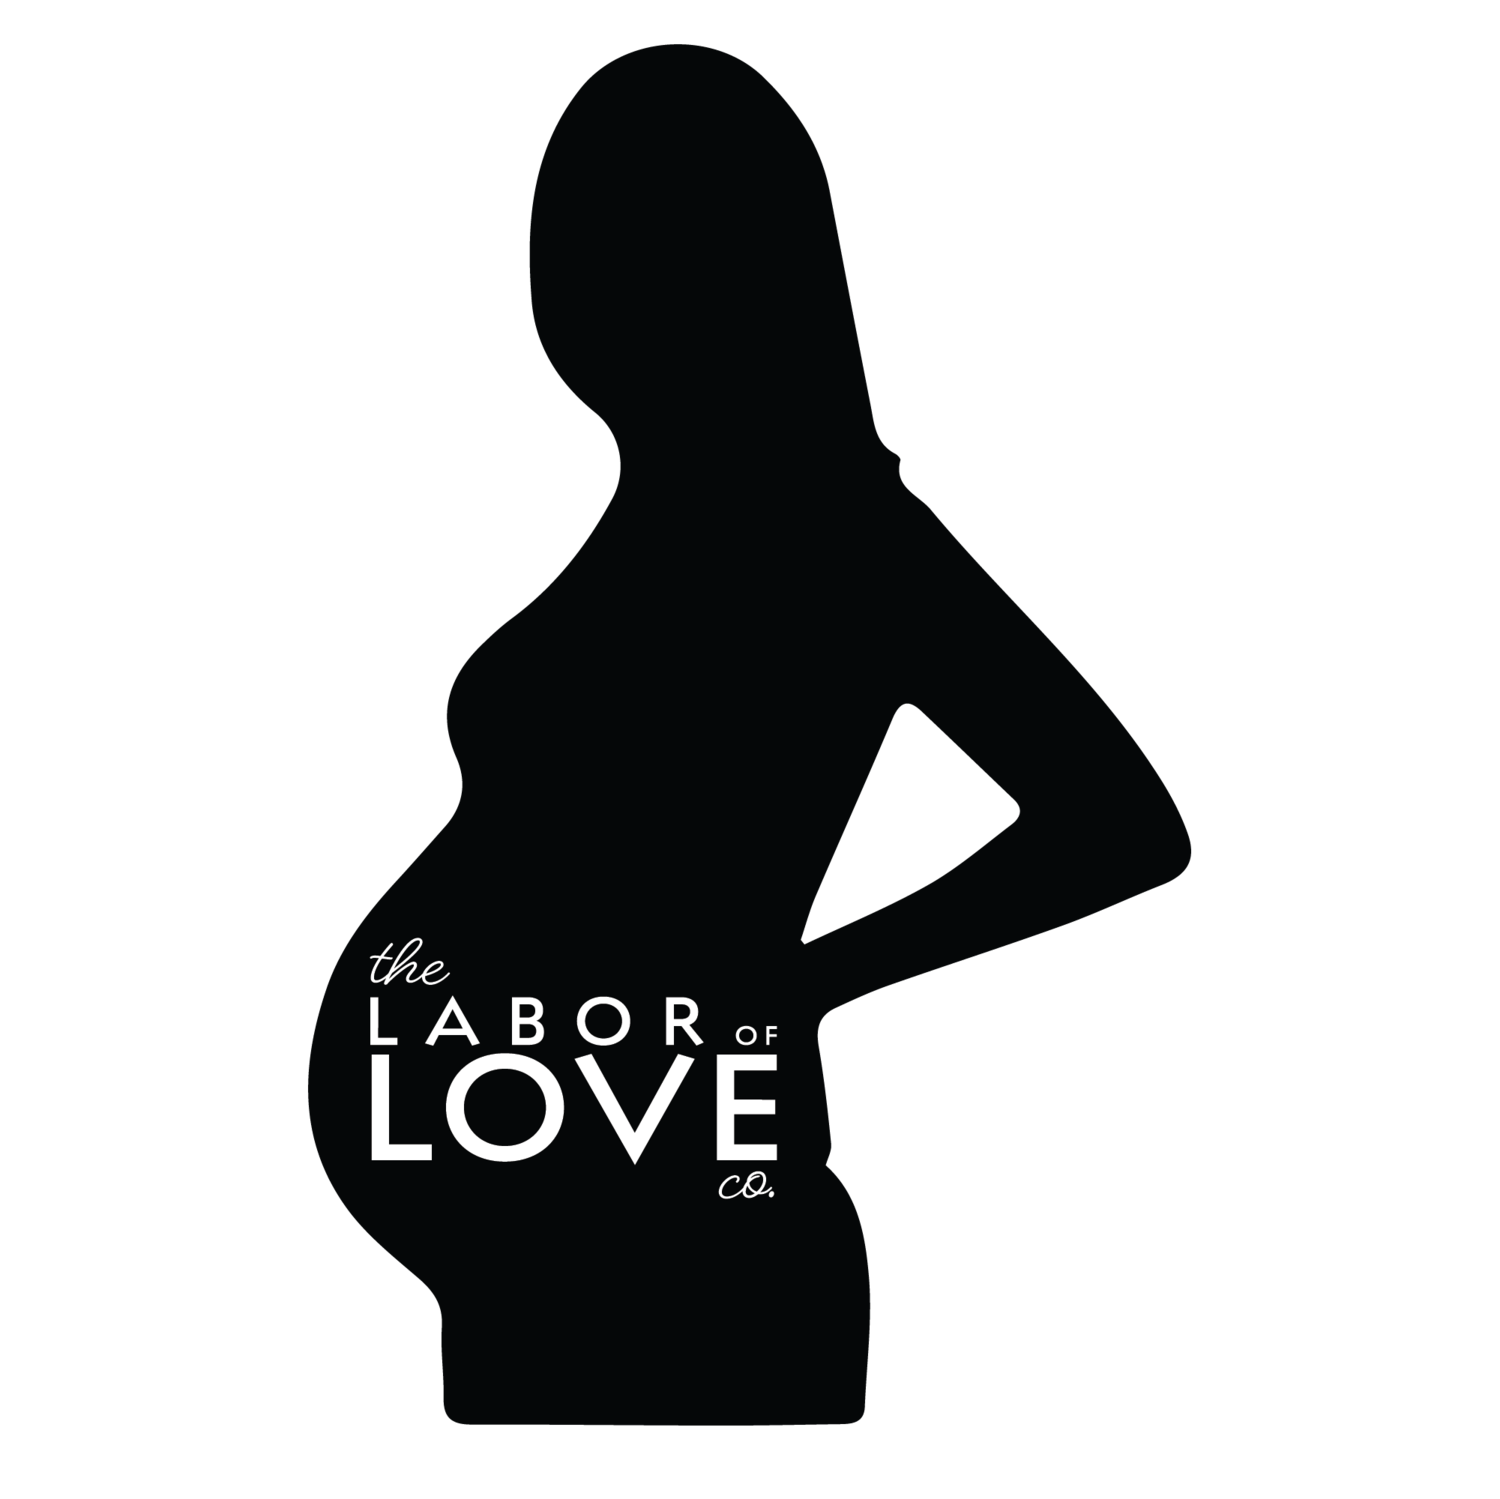 The Labor of Love Co.